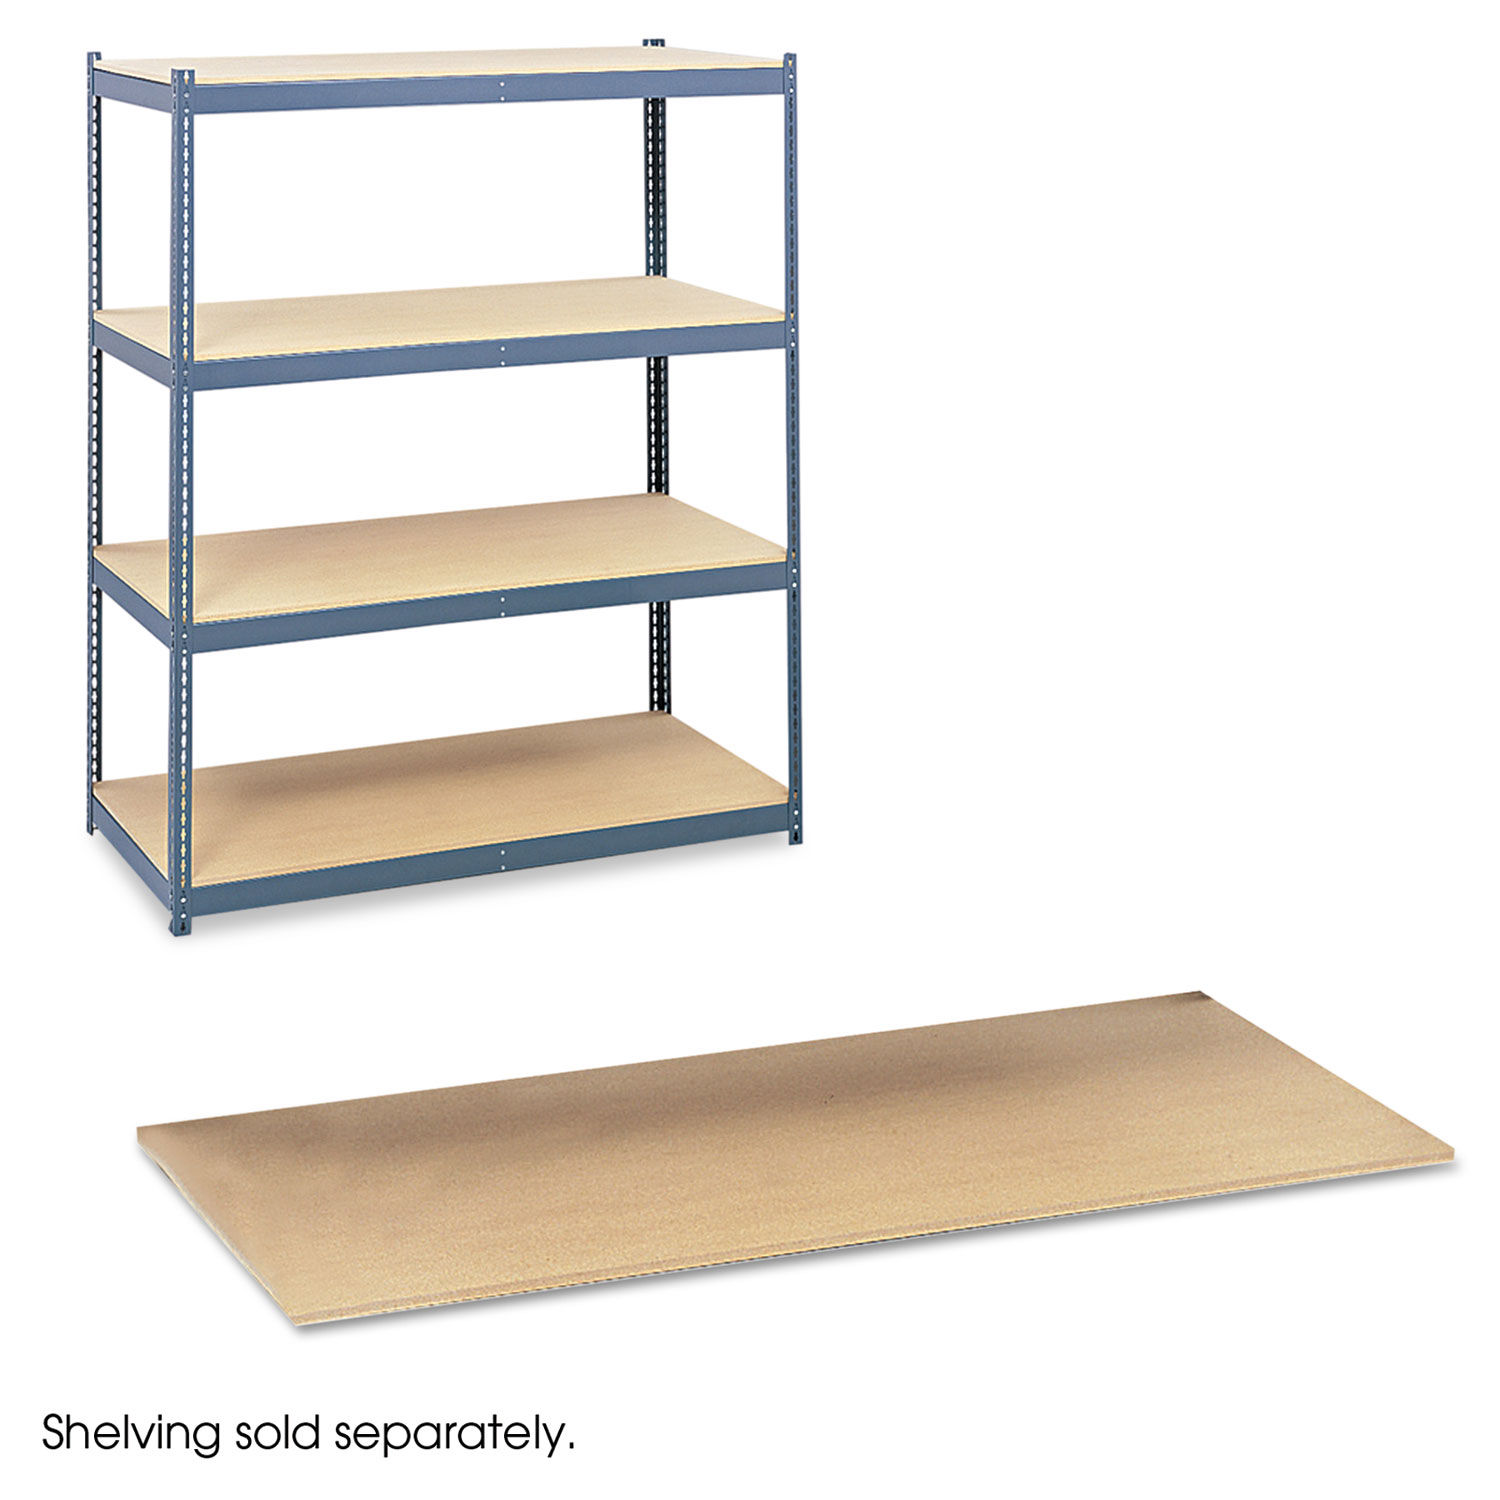 Particleboard Shelves For Steel Pack Archival Shelving By Safco